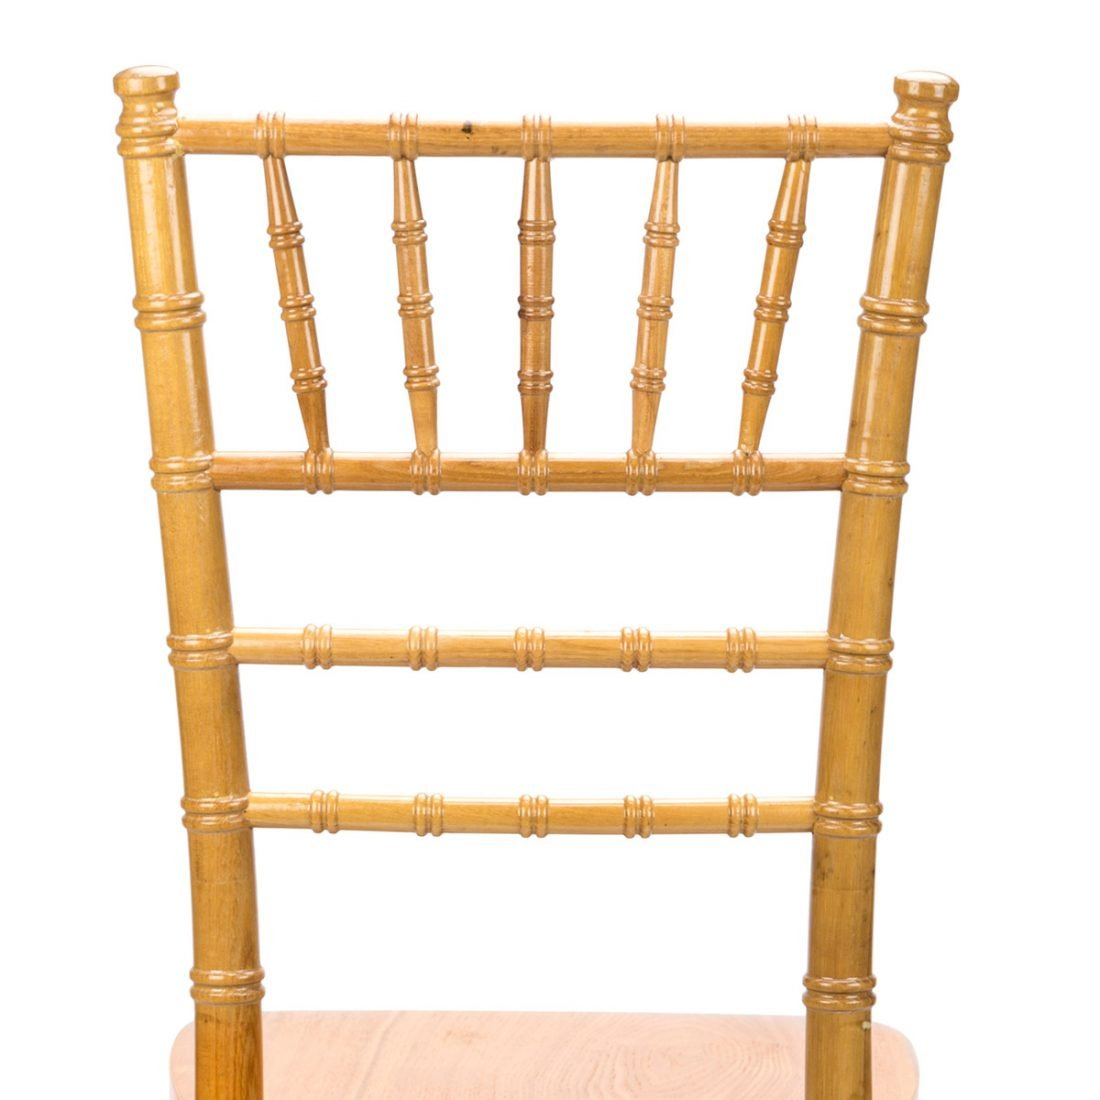 natural wood stacking ansi bifma standard chiavari chair the chiavari chair company. Black Bedroom Furniture Sets. Home Design Ideas